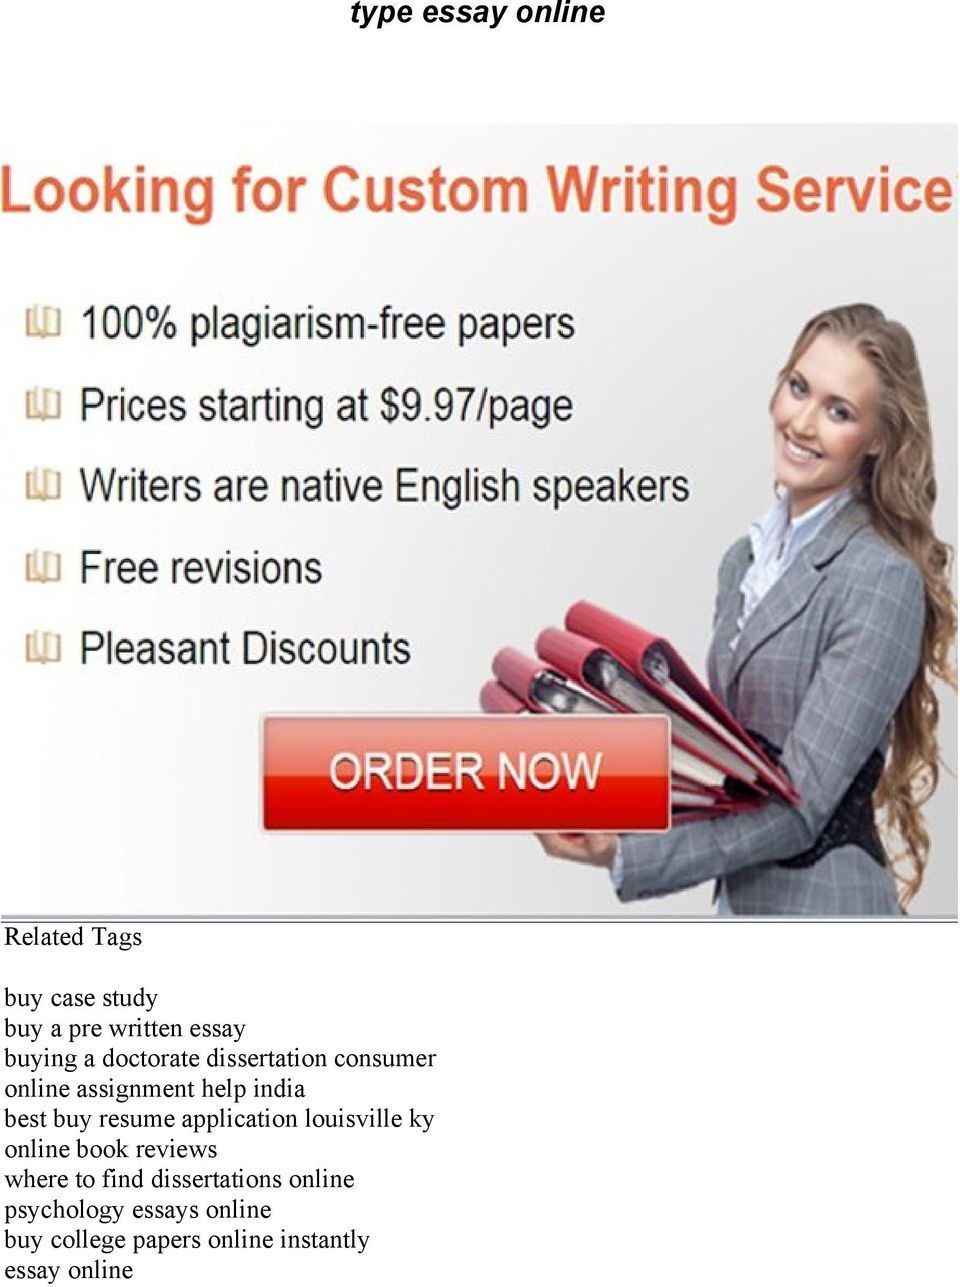 resume application louisville ky online book reviews where to find